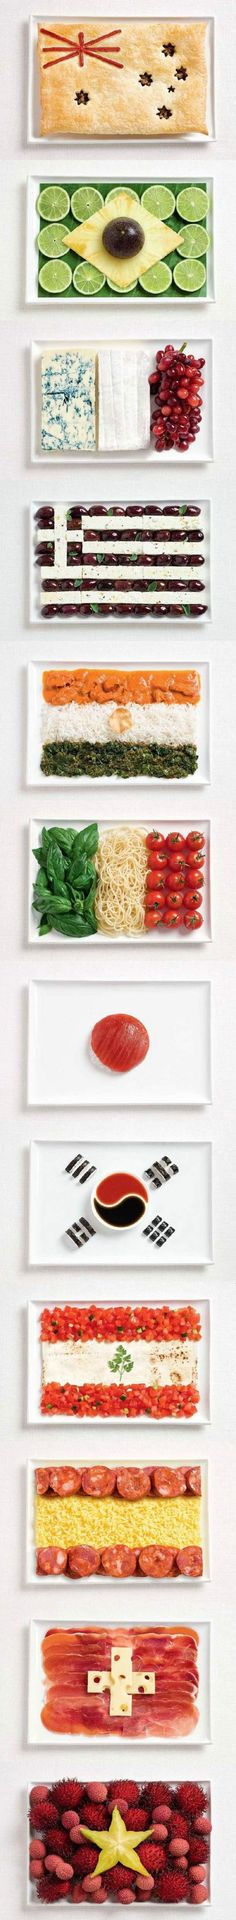 Flags made from food - how creative!